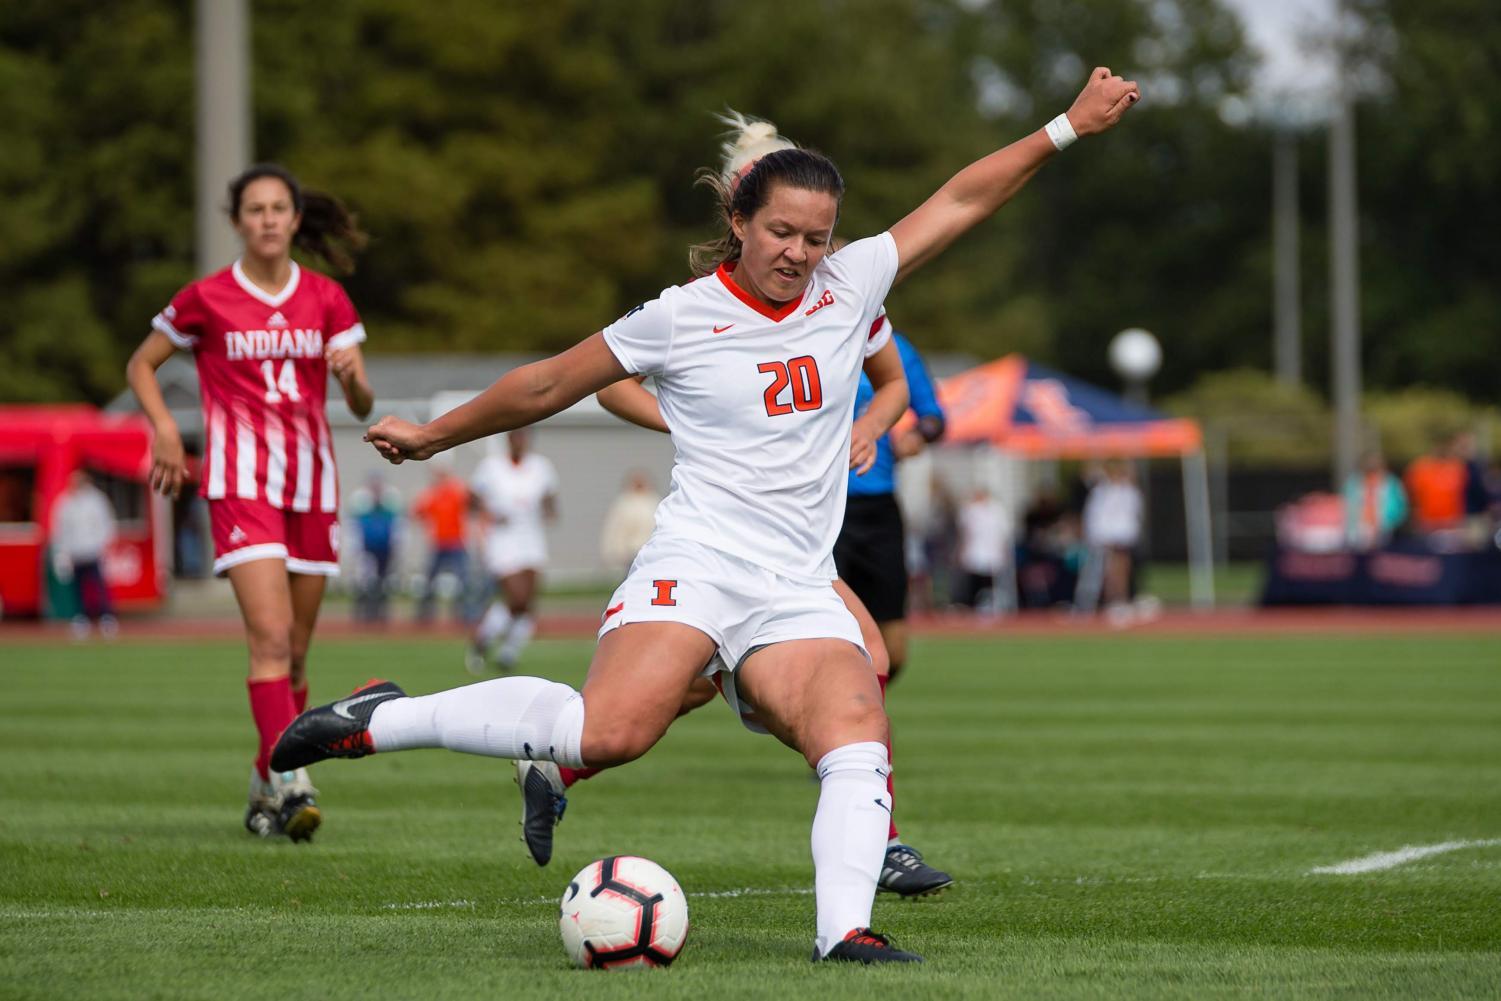 Sophomore forward Makena Silber shoots the ball during Illinois' game against Indiana at the Illinois Soccer Stadium on Oct. 14, 2018. Silber began playing soccer at age 4 and comes from an athletic background.